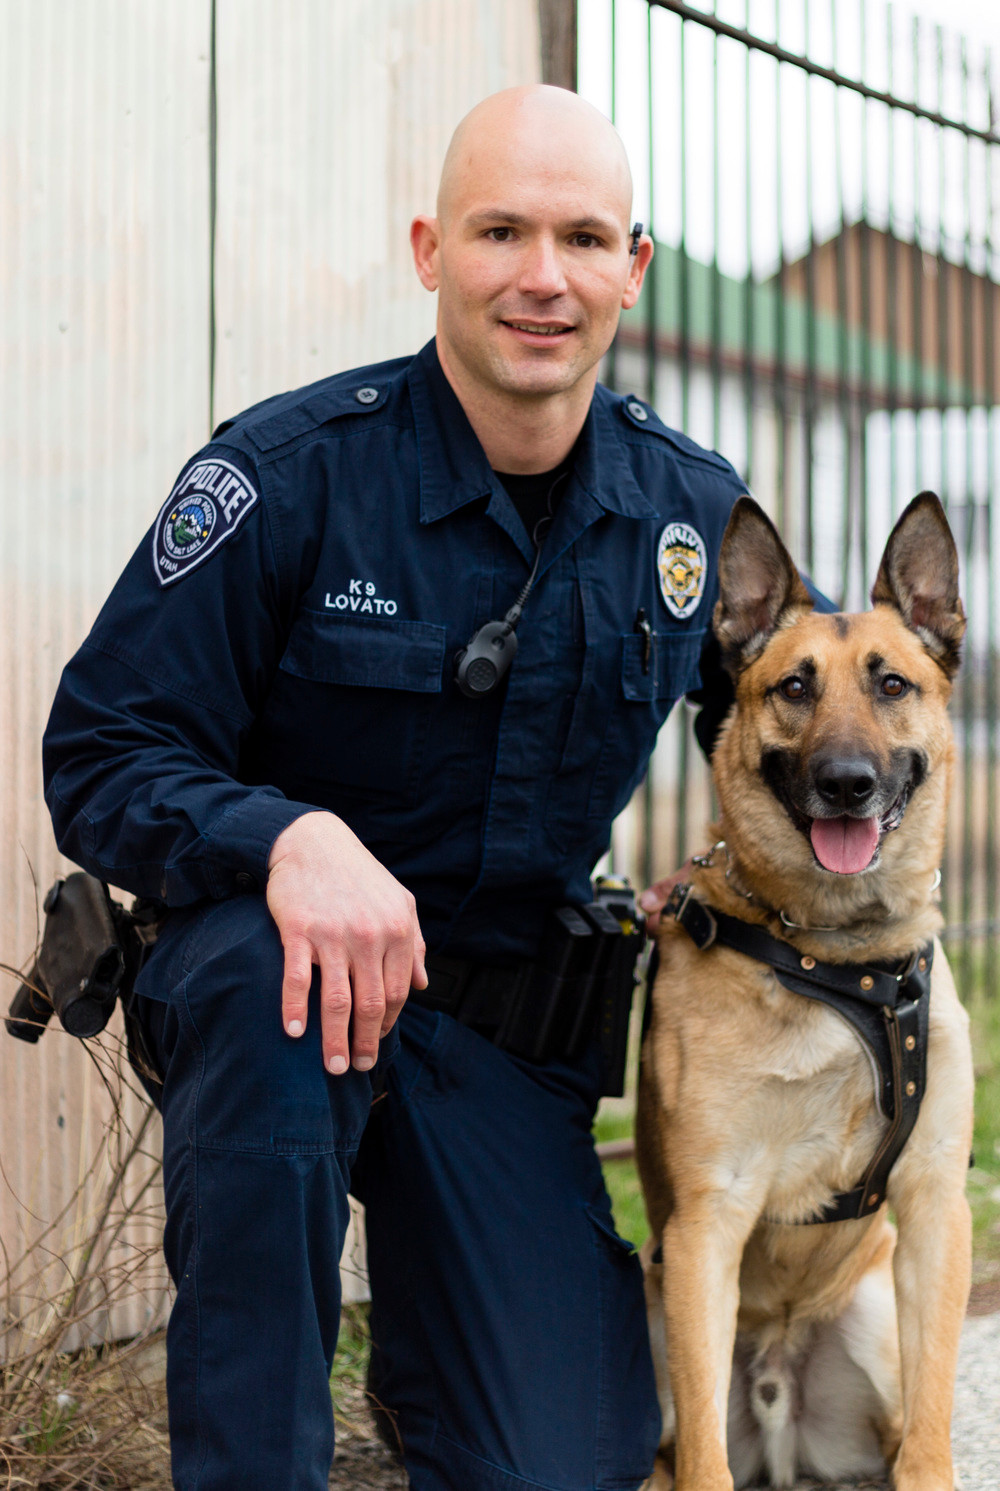 K9 Officer Aldo with Sgt. Luis Lovato